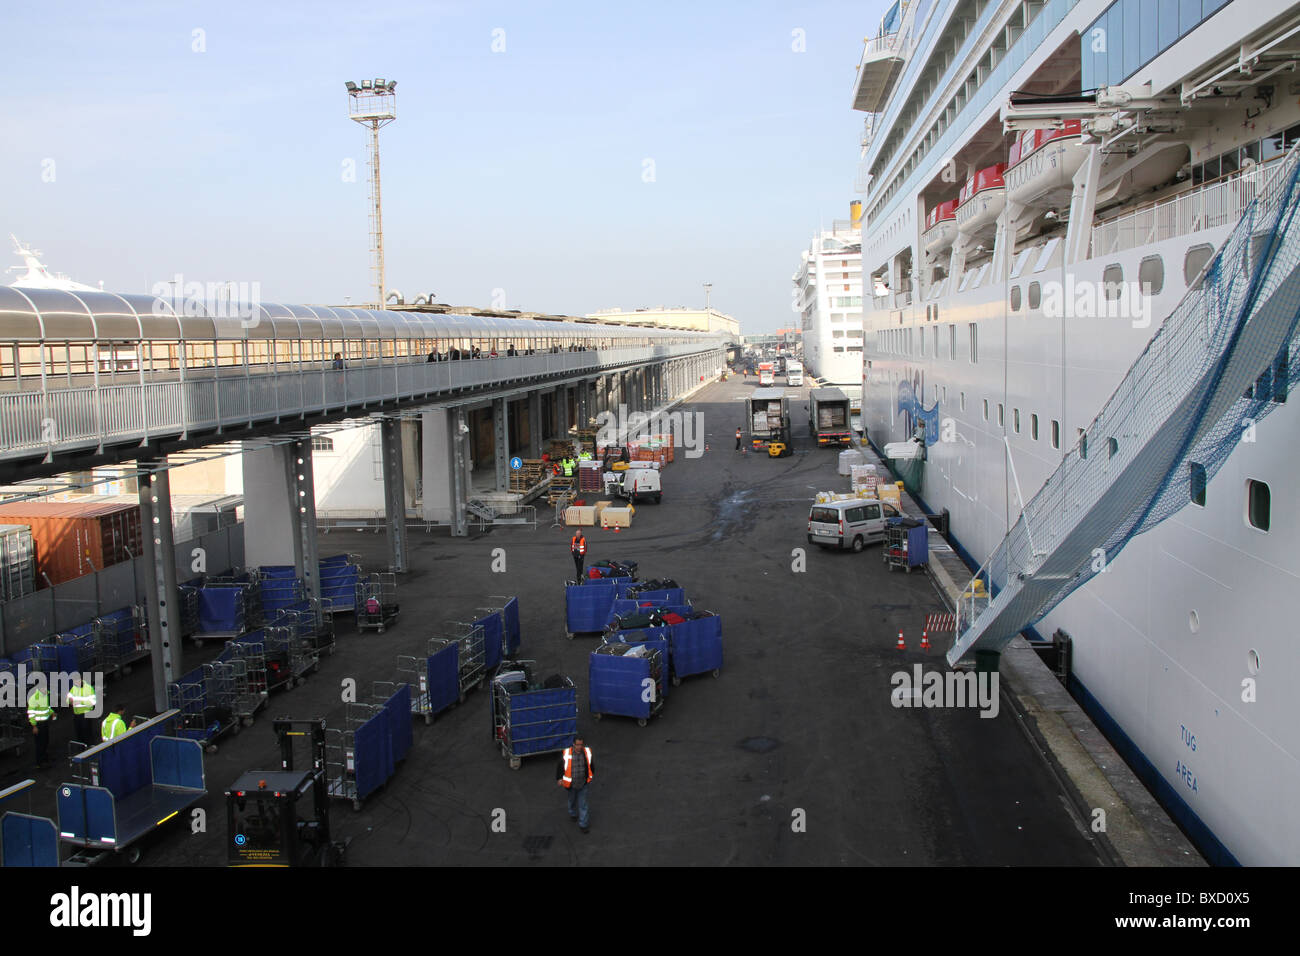 Norwegian Gem ready to leave Venice, Italy - Stock Image